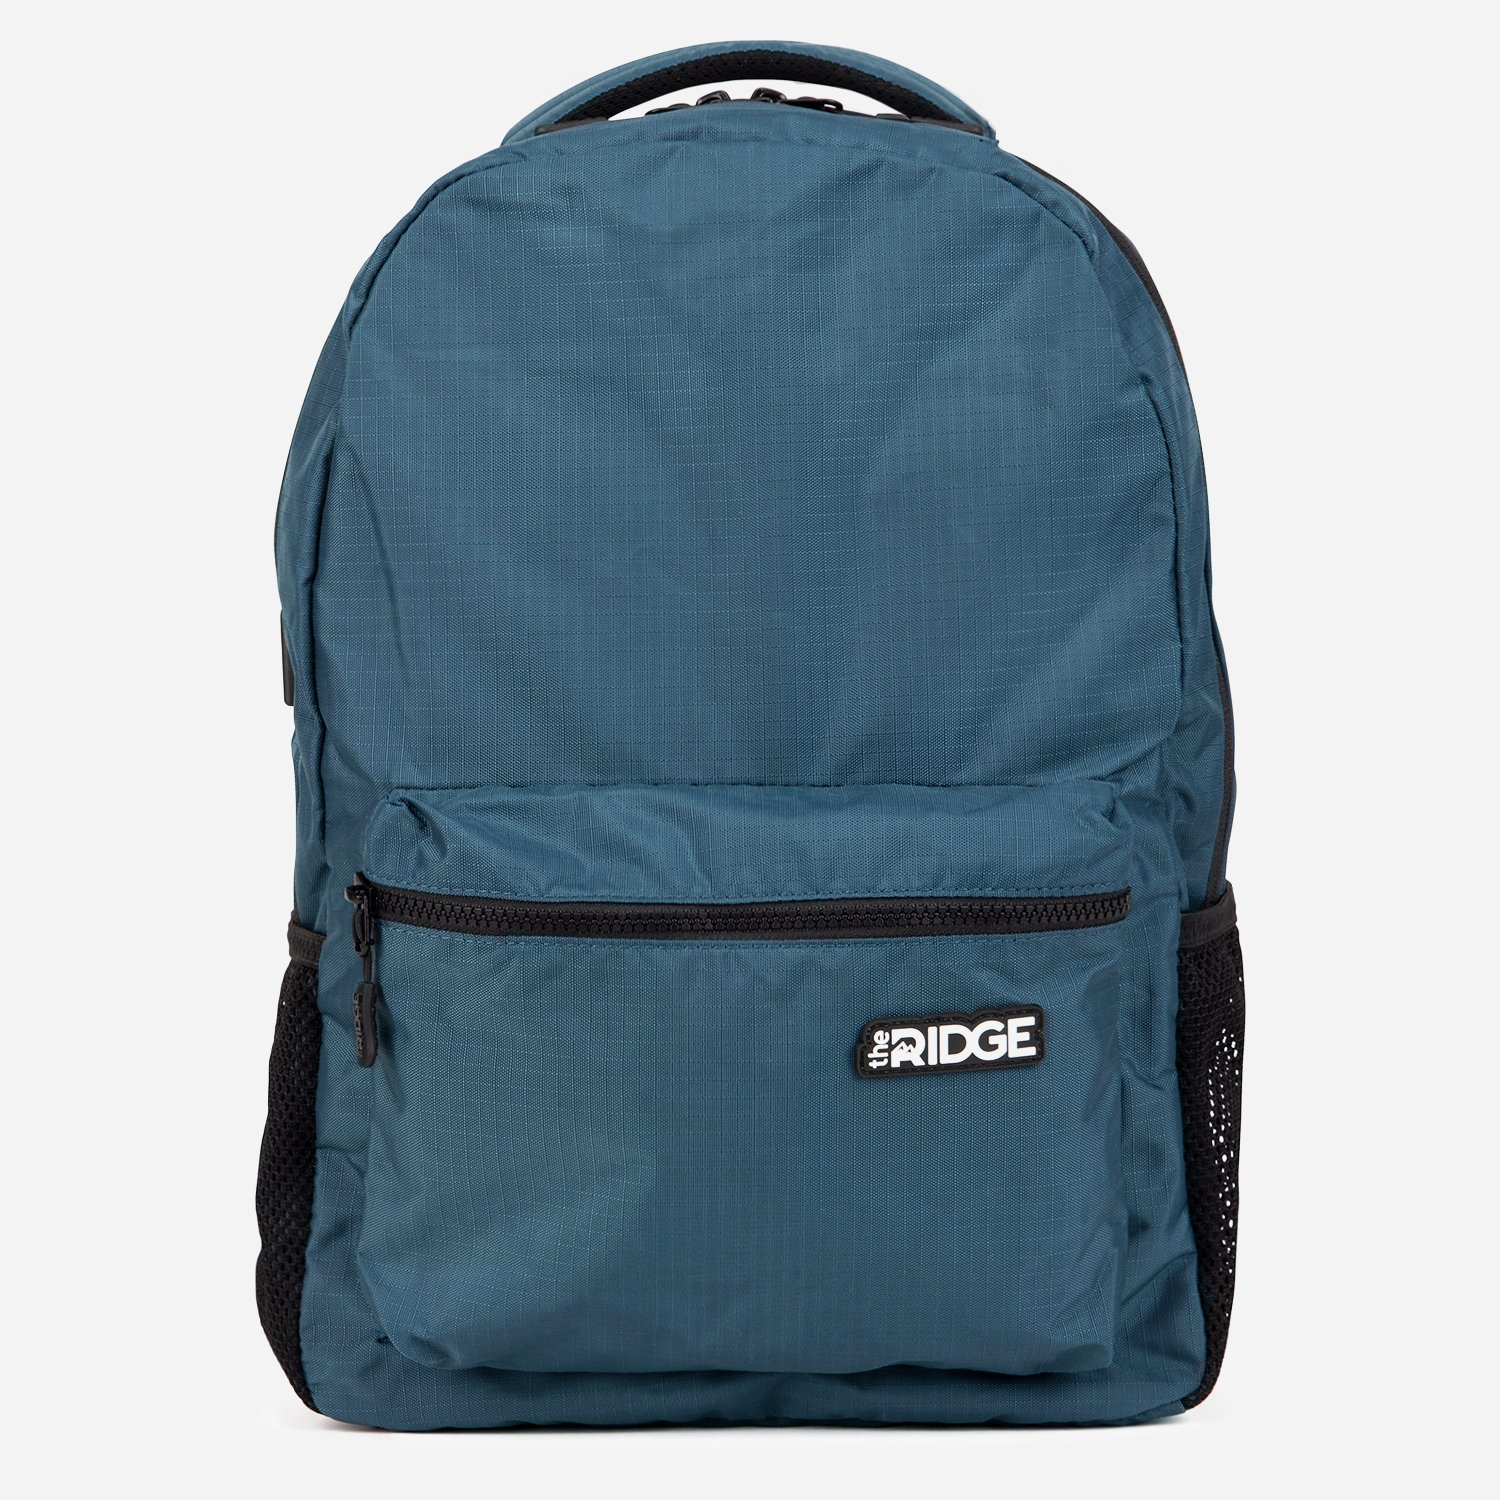 The Classic Backpack - Ripstop